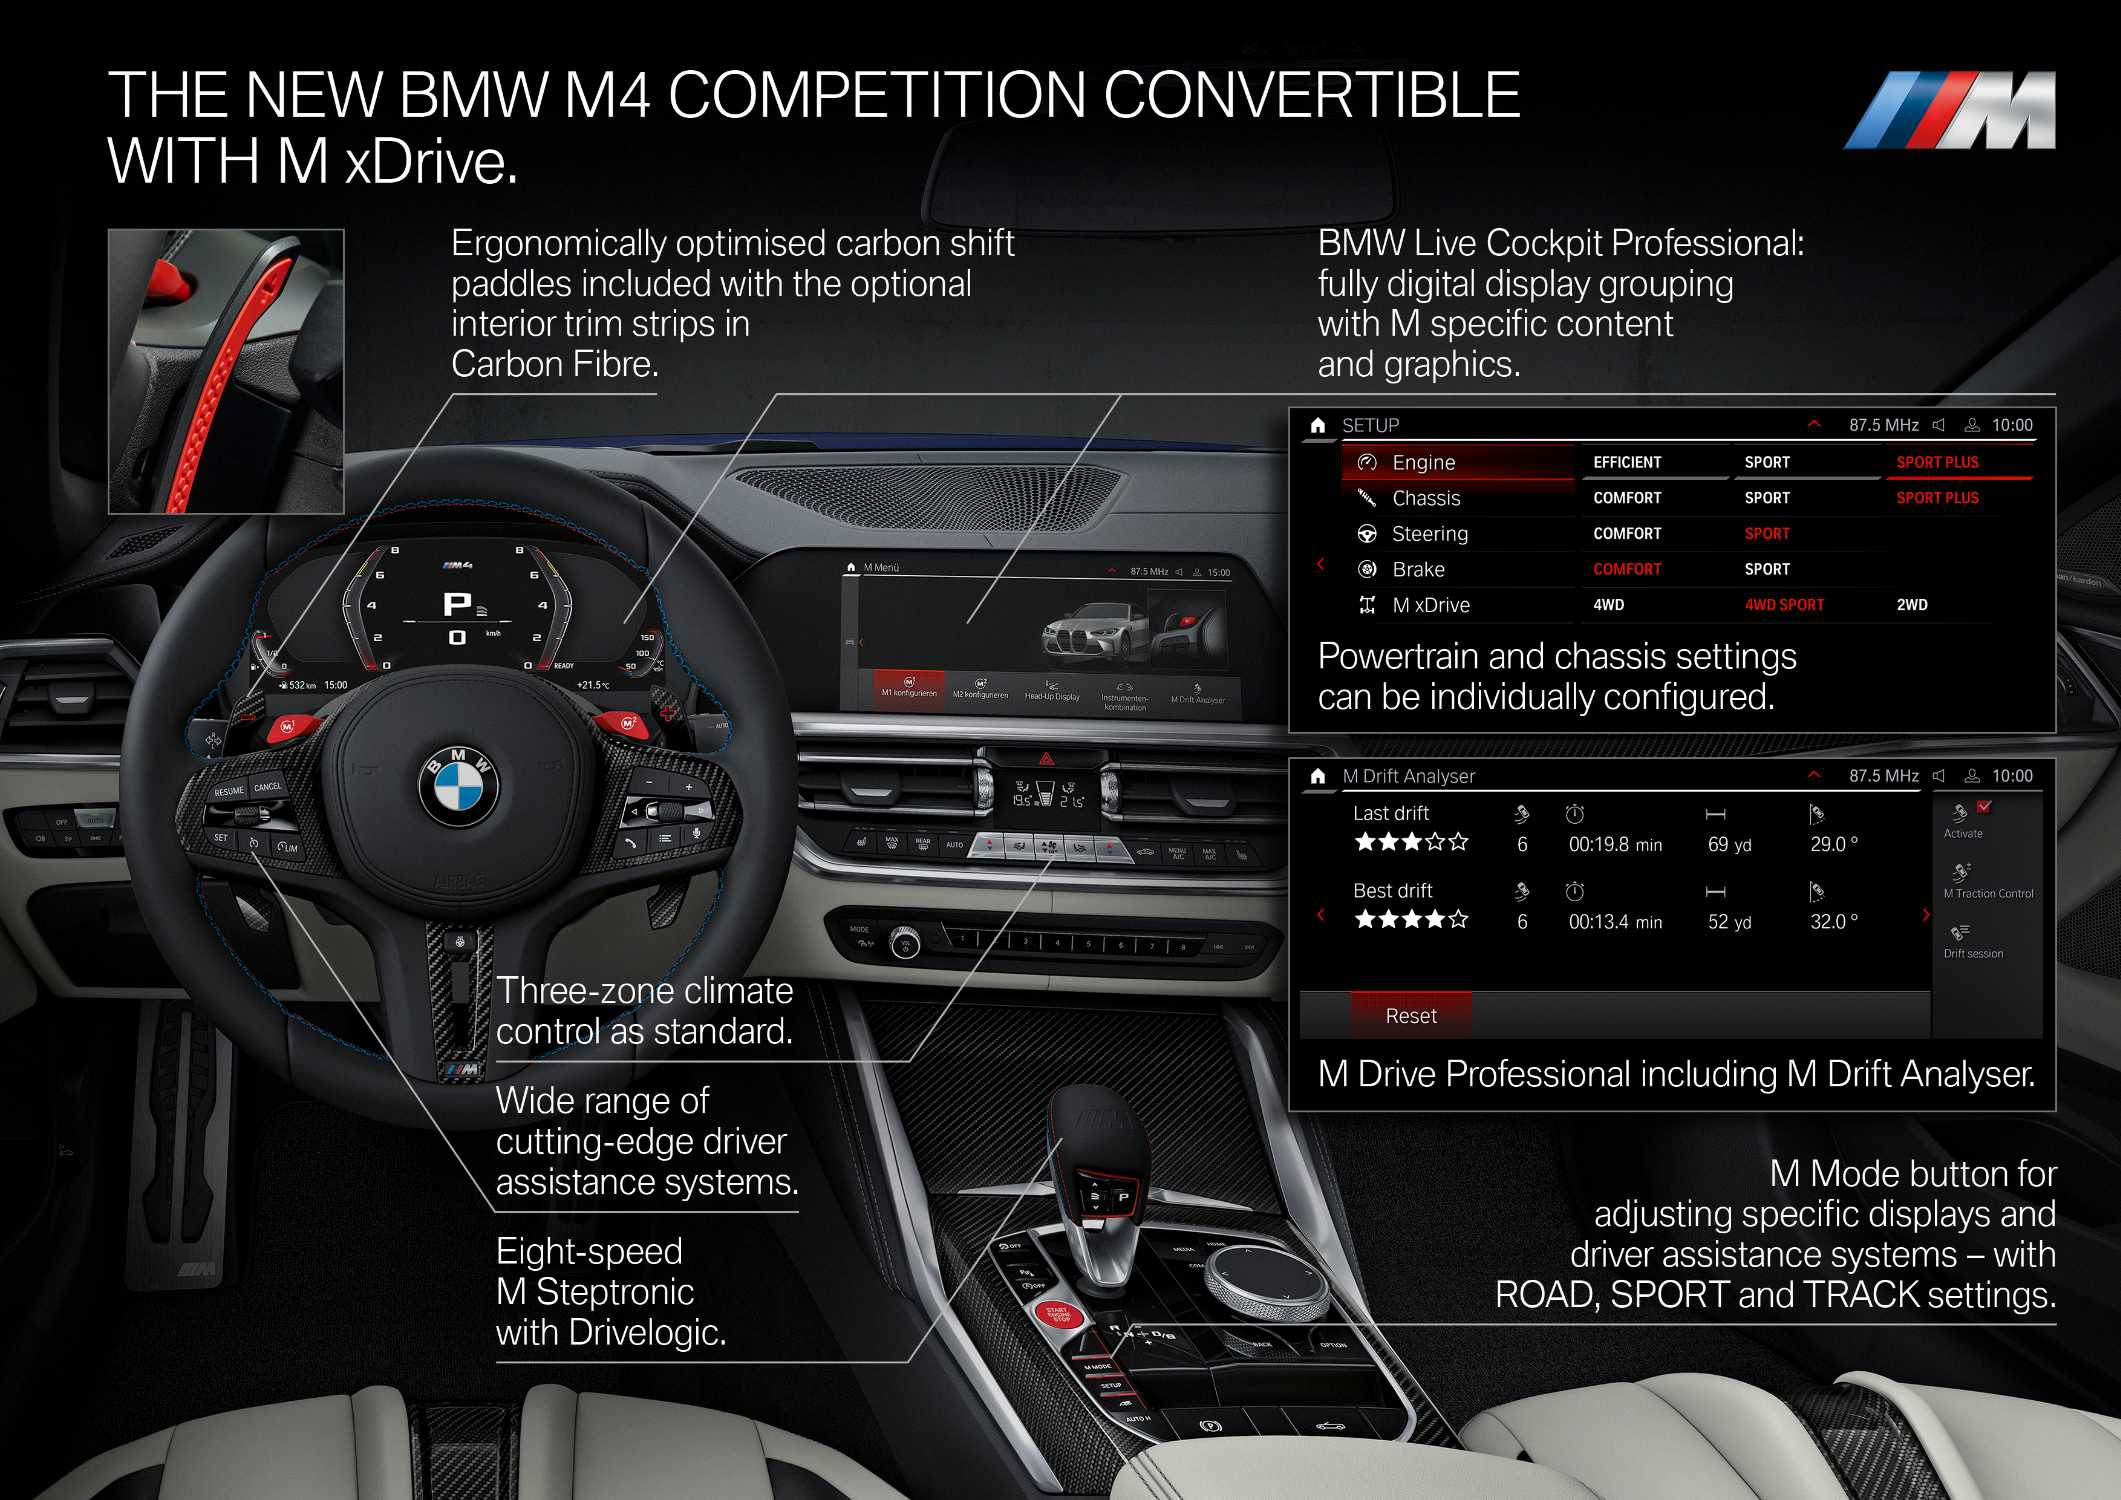 The new BMW M4 Competition Convertible with M xDrive (05/2021).